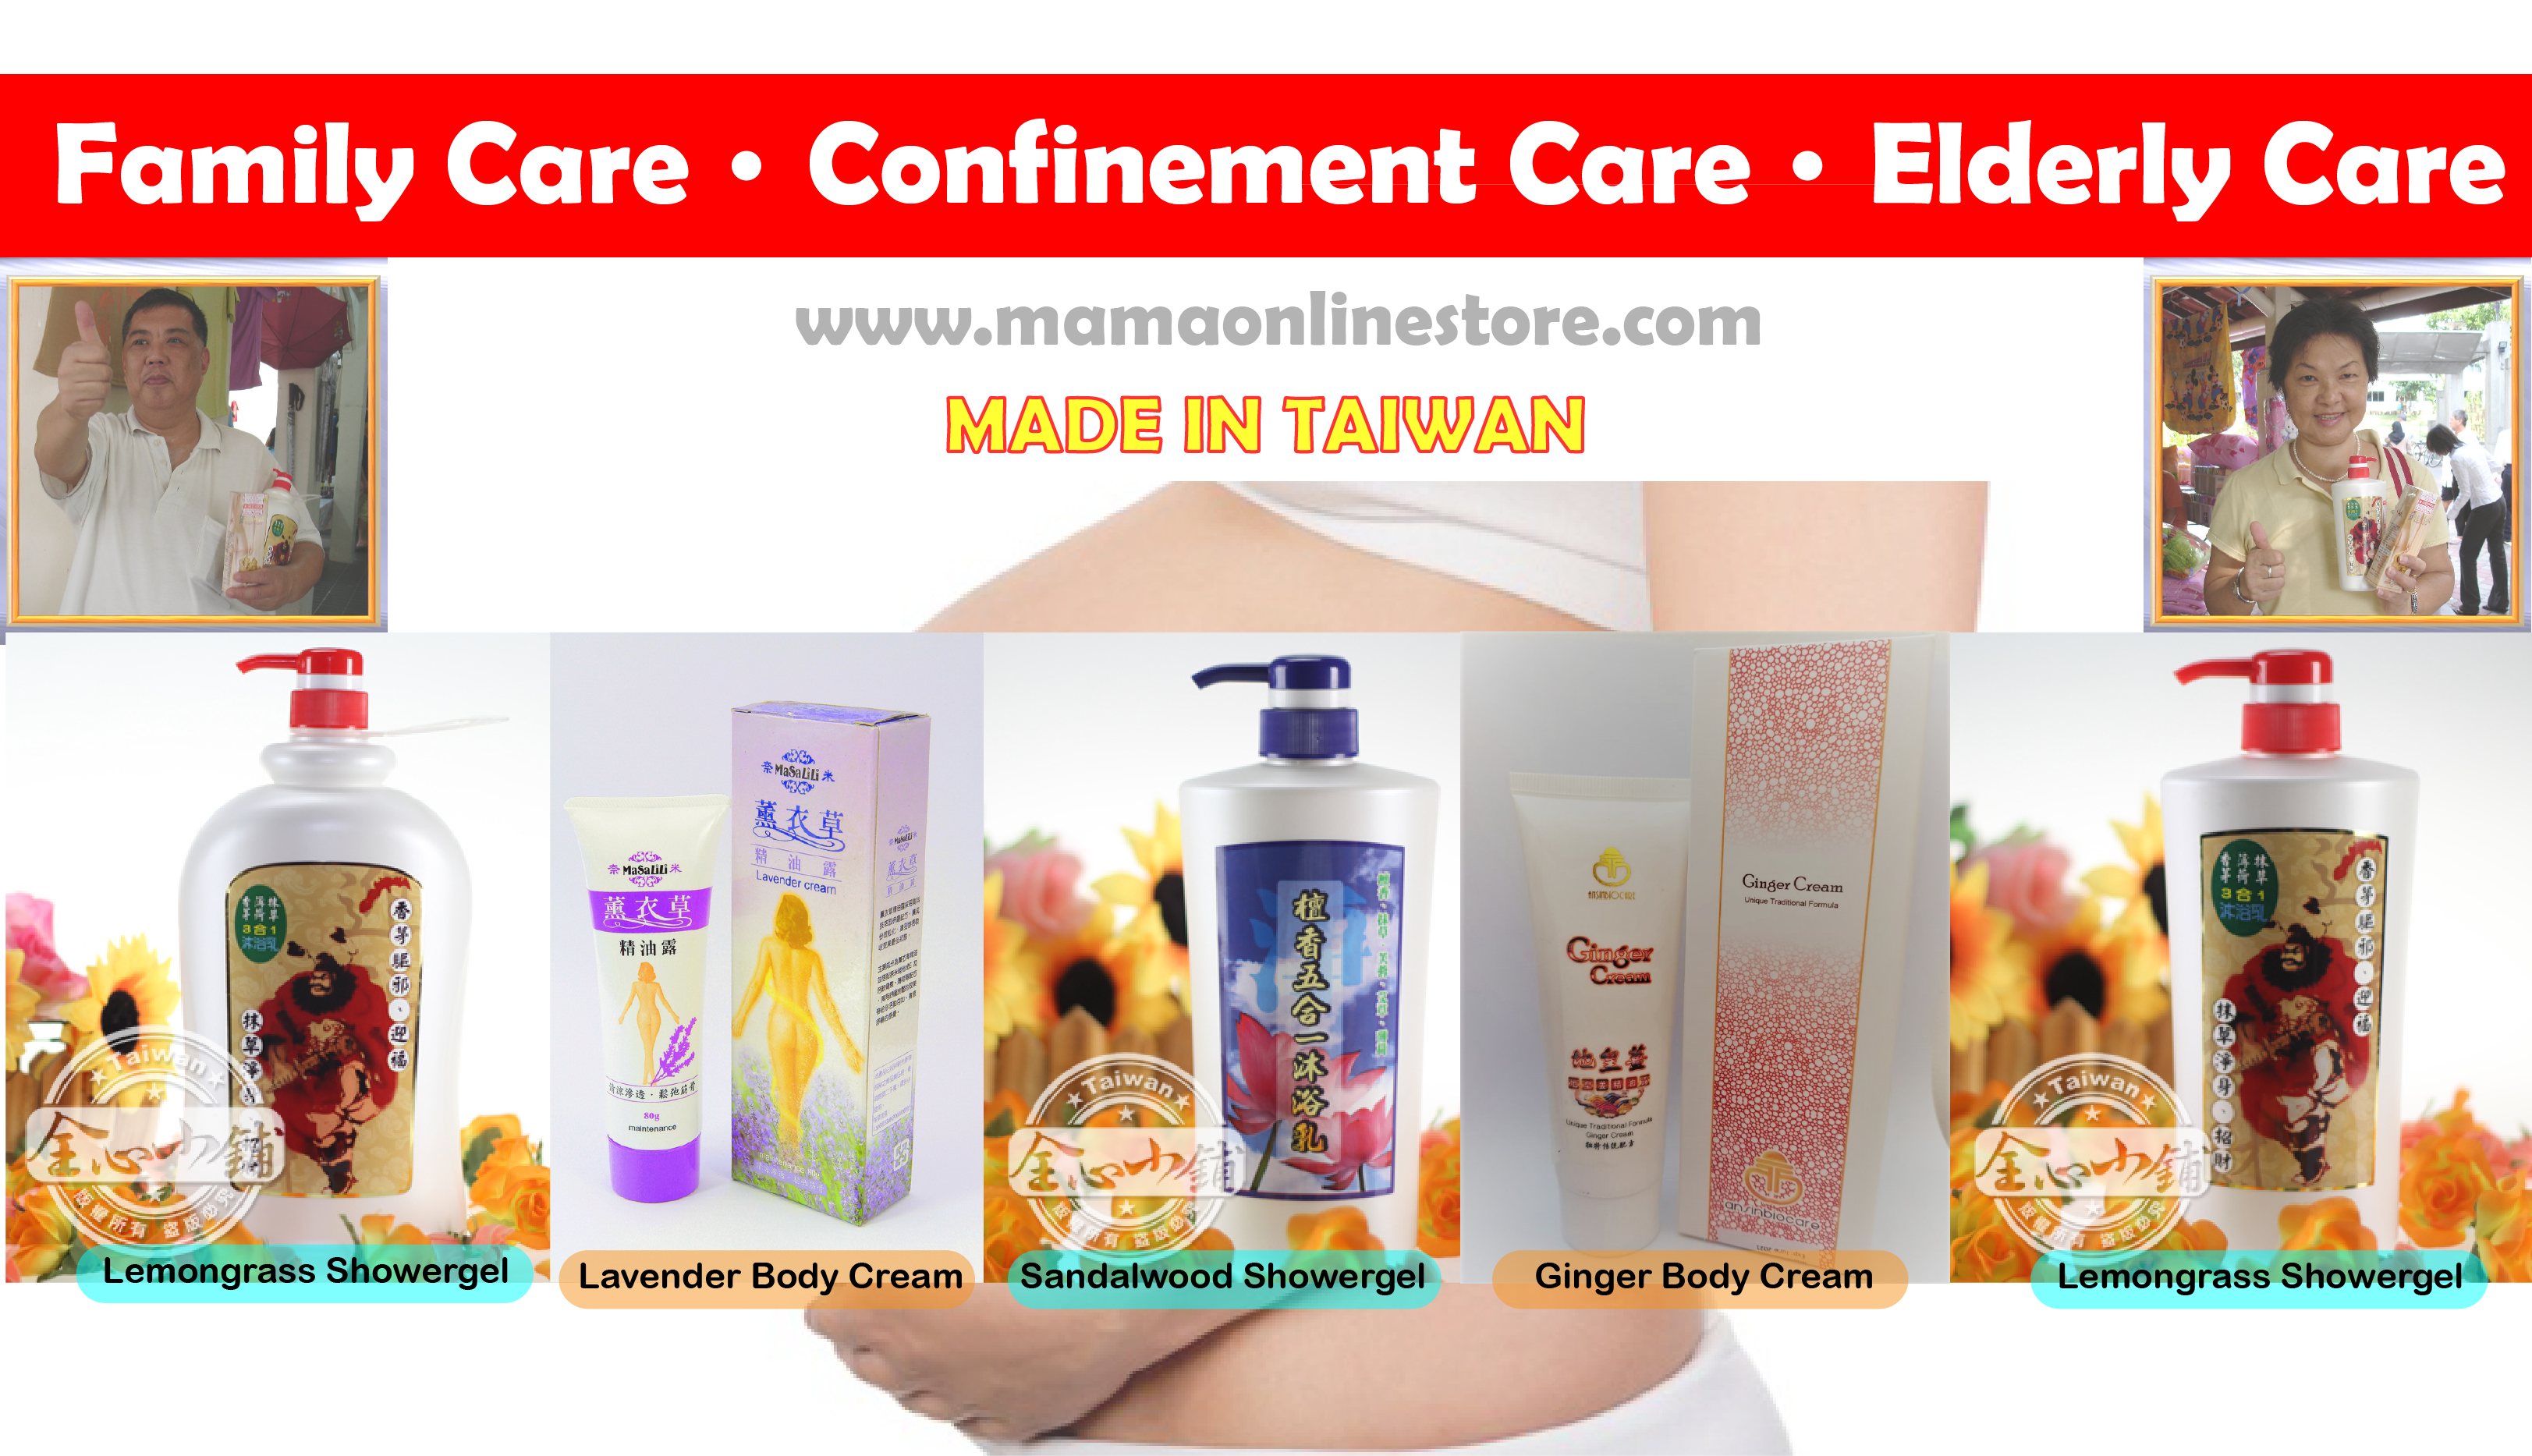 Taiwan Confinement Care & Family Care